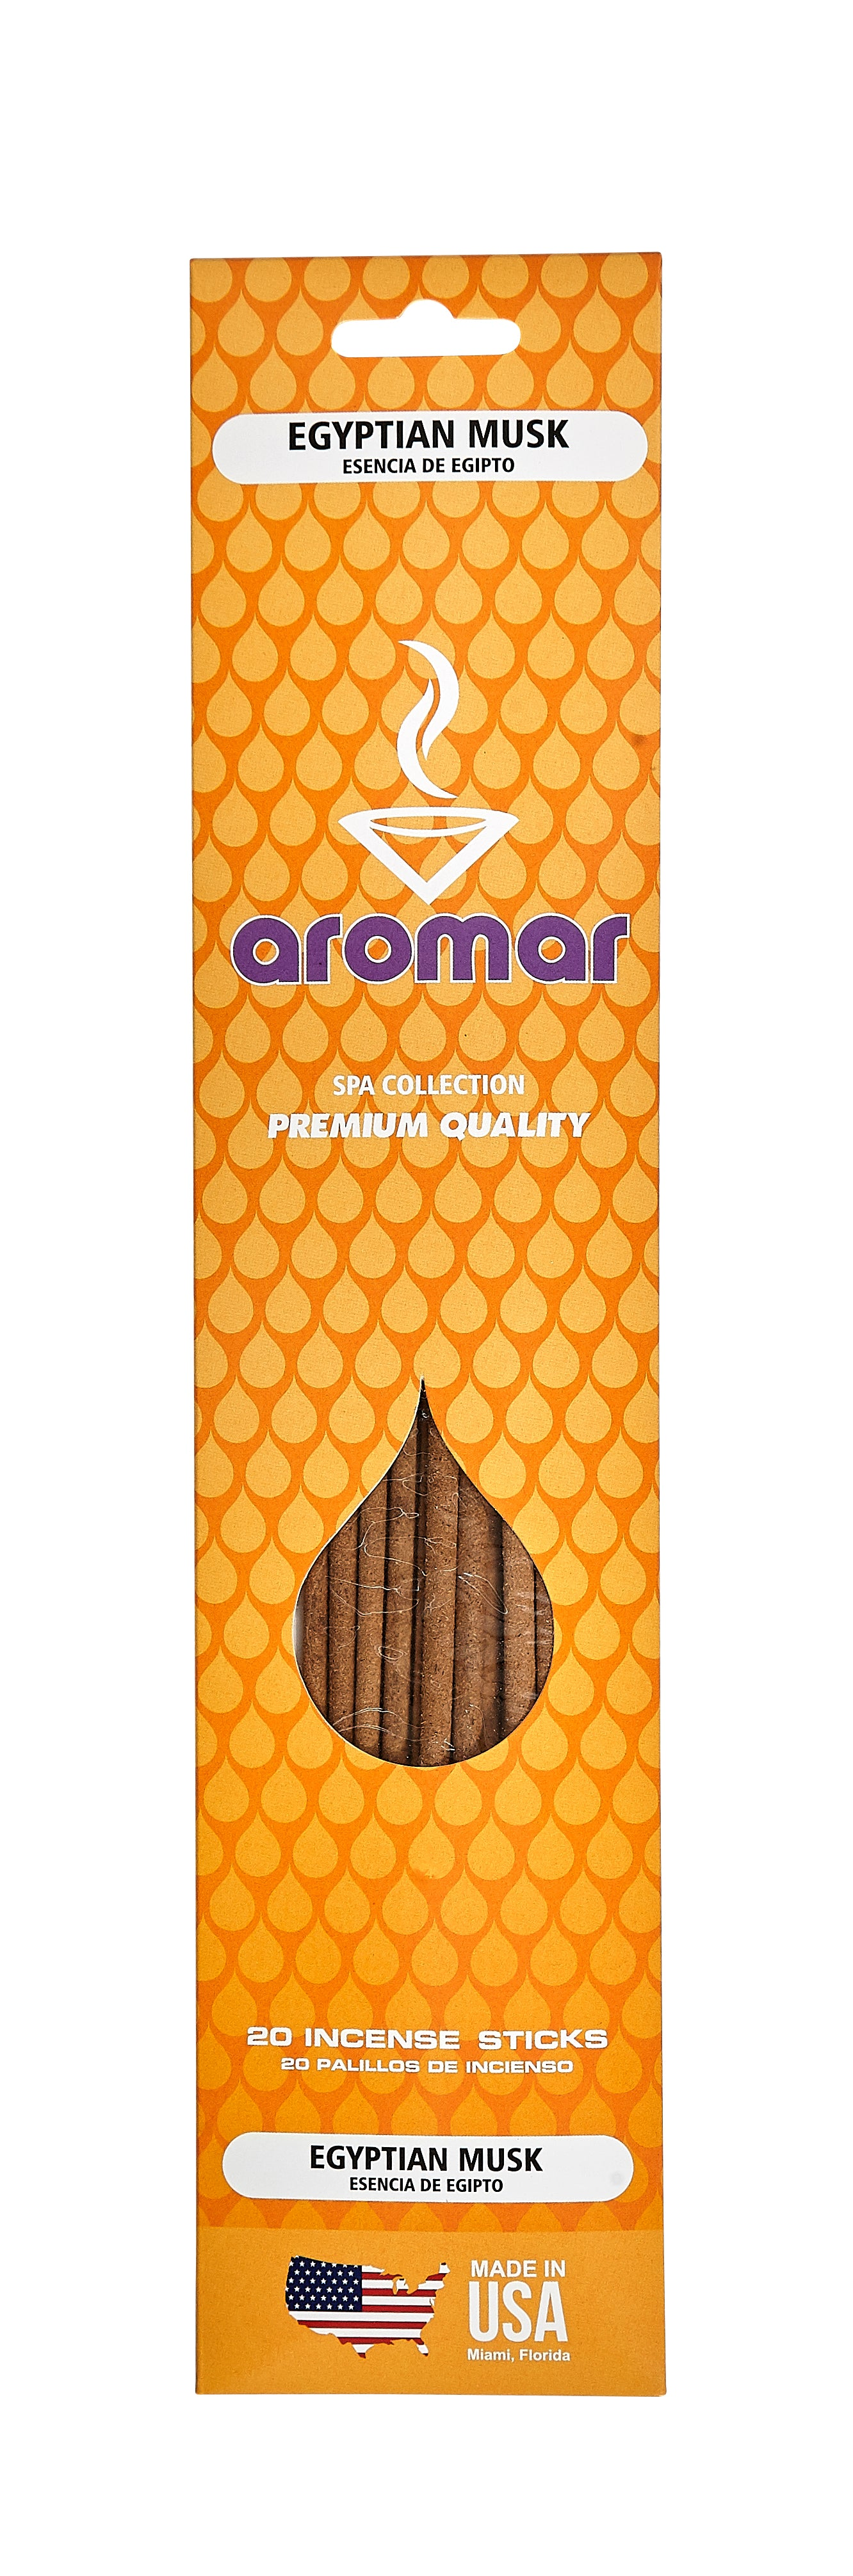 Egyptian Musk Premium Hand Dipped Pre-Packed Incense